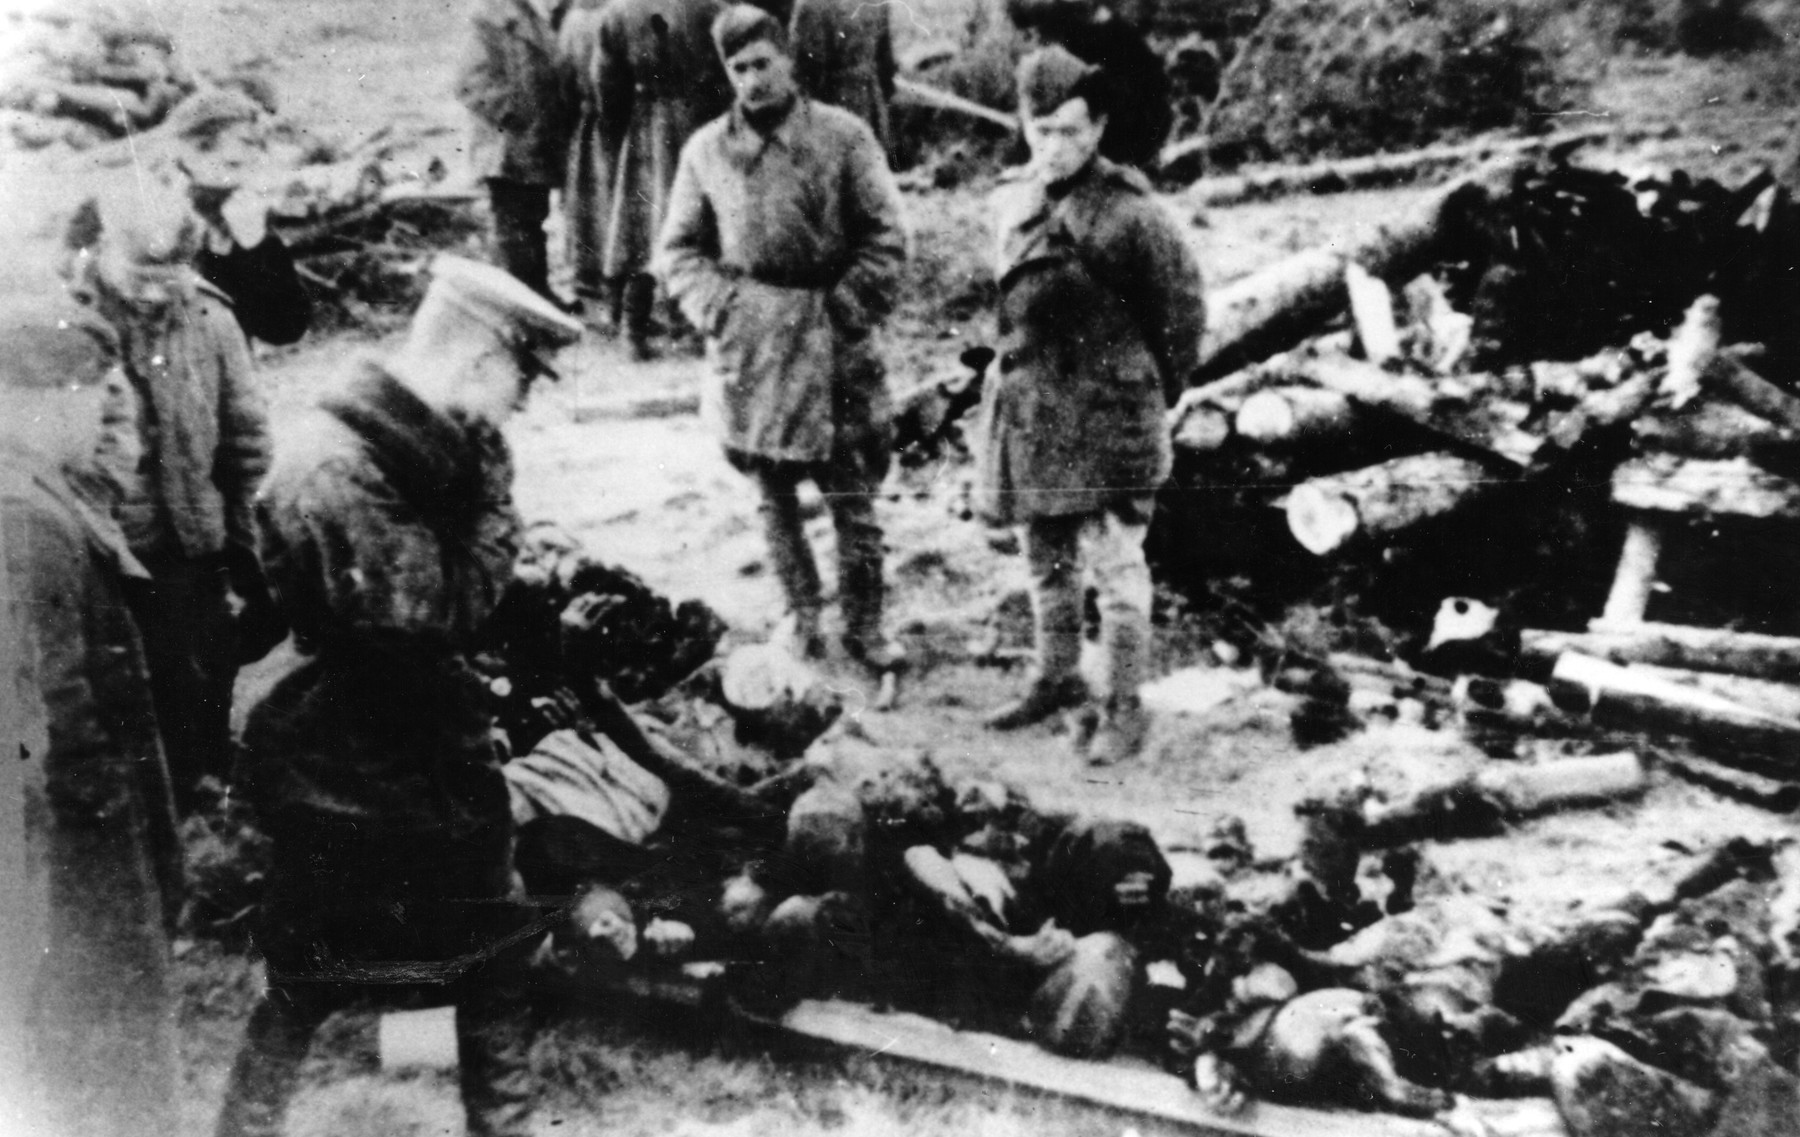 Soviet troops view the bodies of prisoners from the Klooga concentration camp that have been stacked on a pyre.